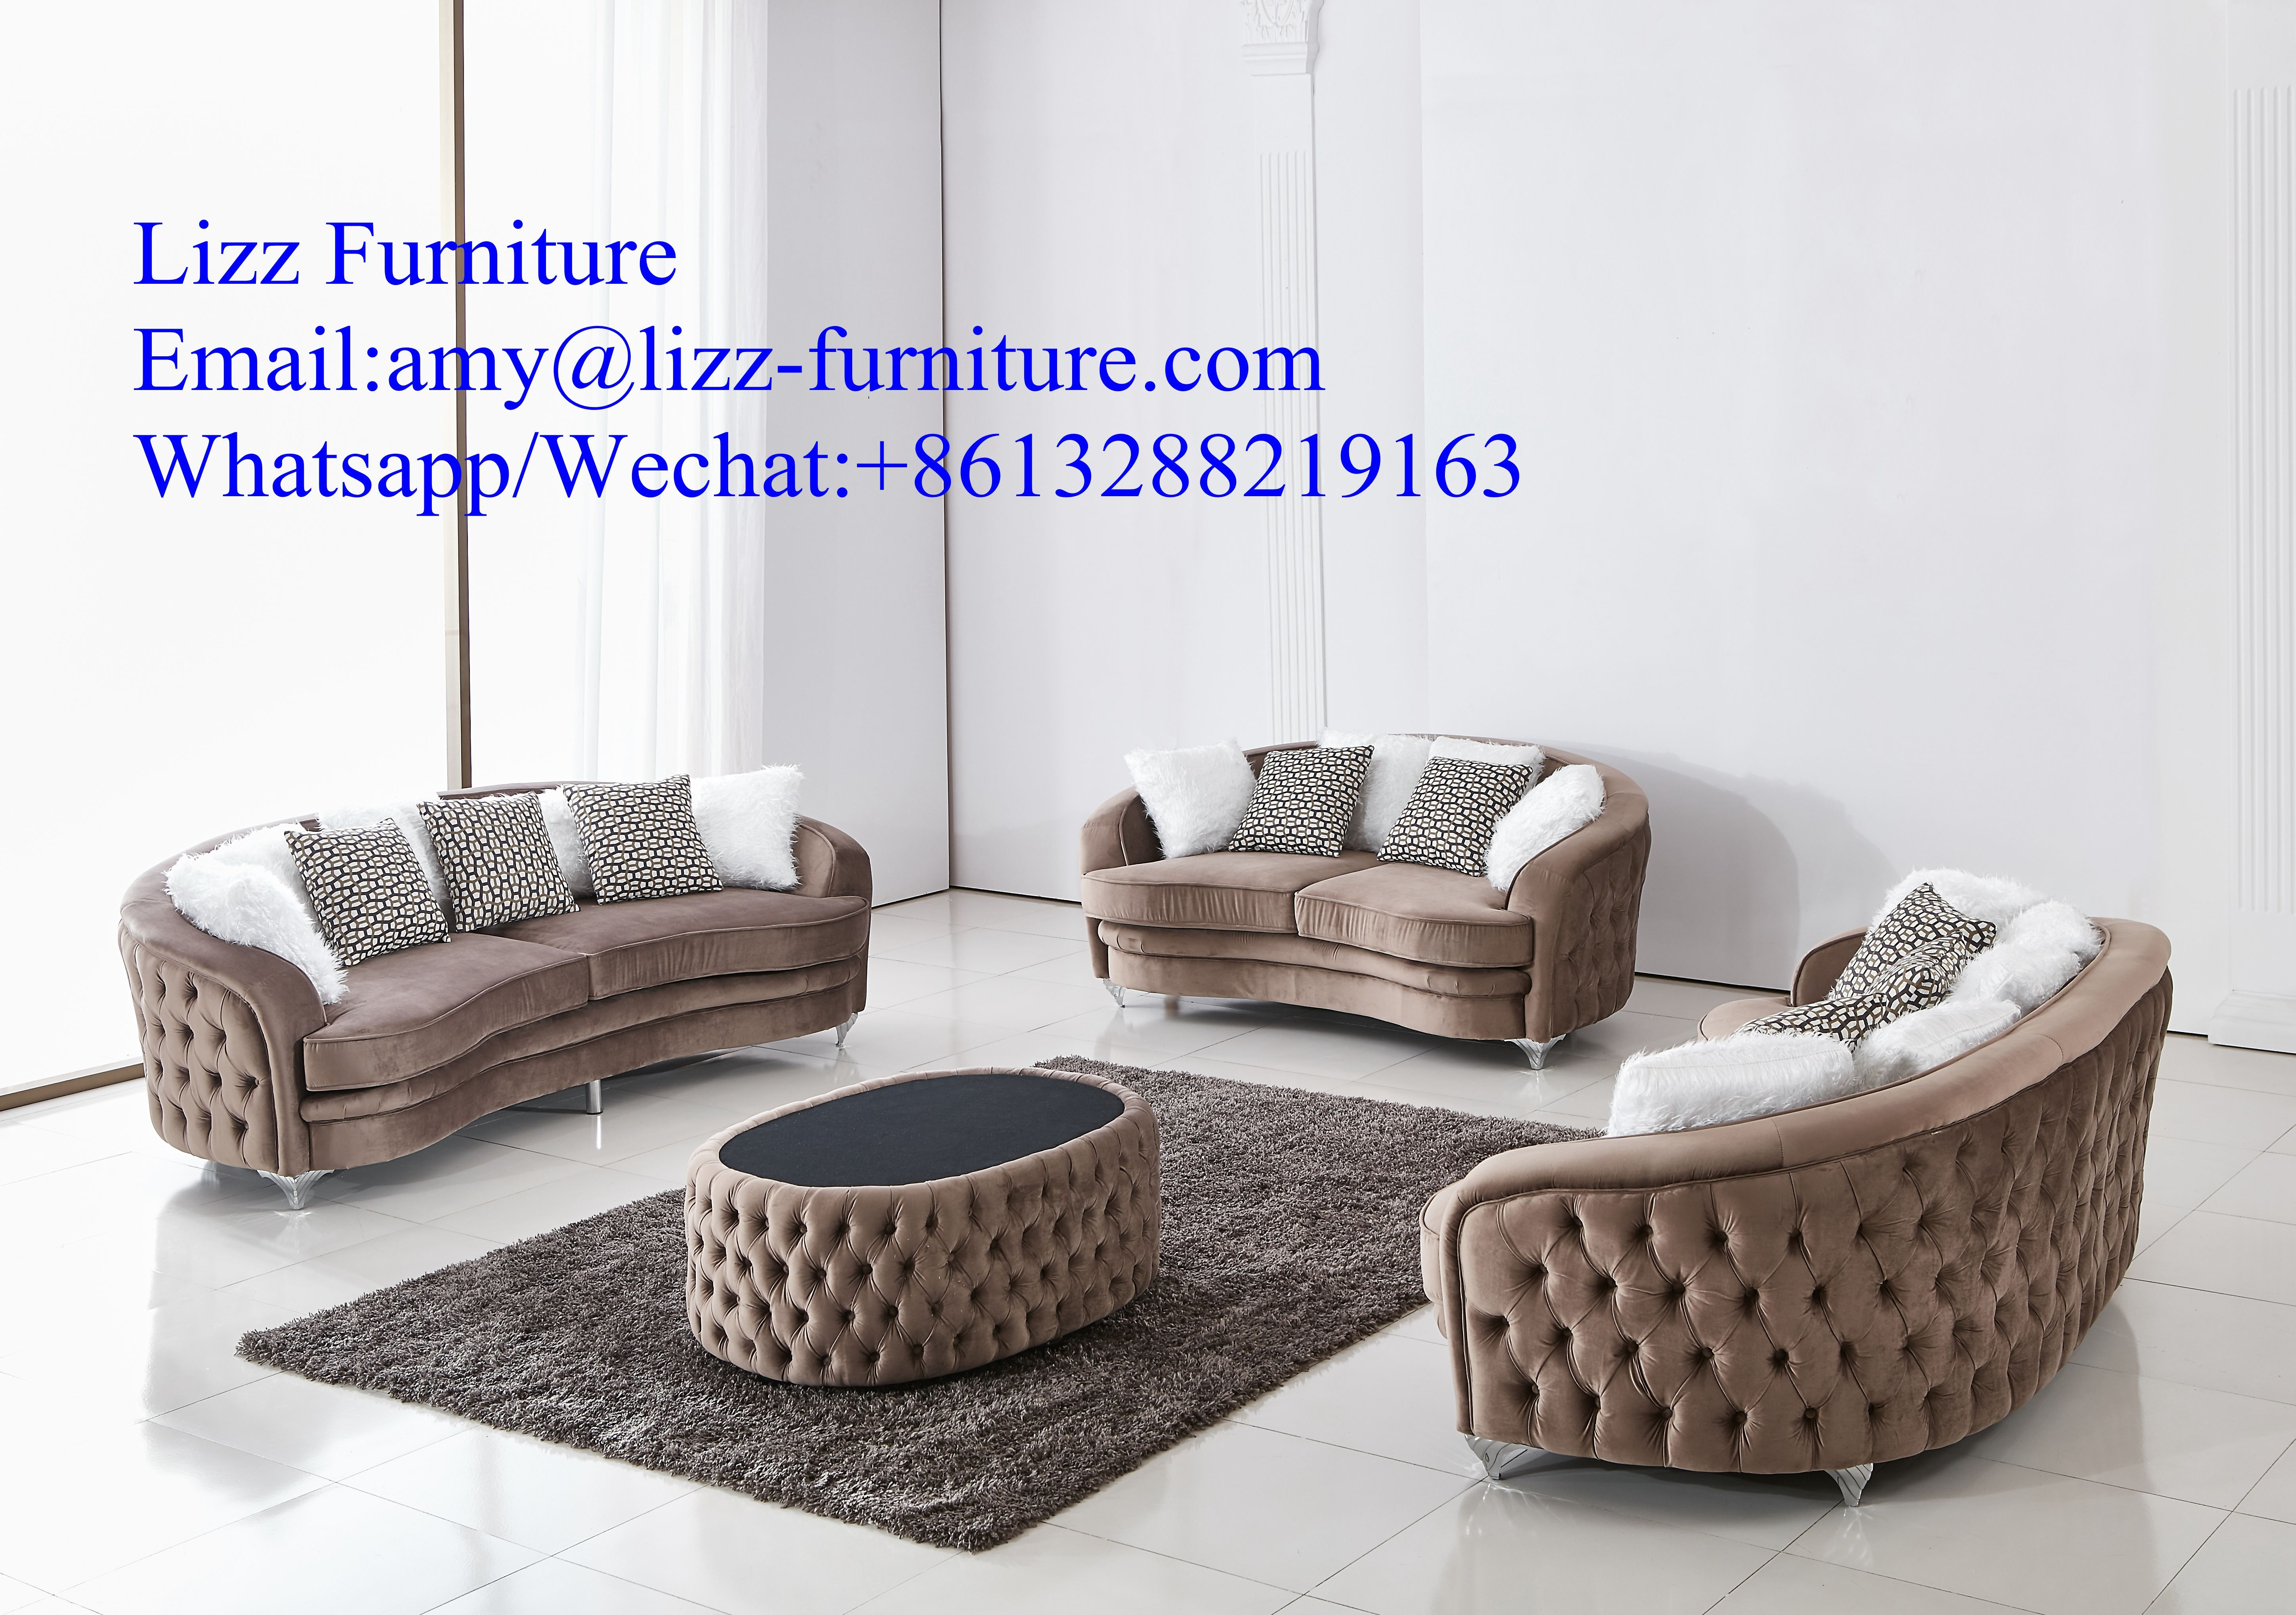 Dark Grey Couch Also Luxury Couch Schlaffunktion Neu 50 Lizz Sofa Model Lf 808 Take A Break From The Busy Life Enjoy And